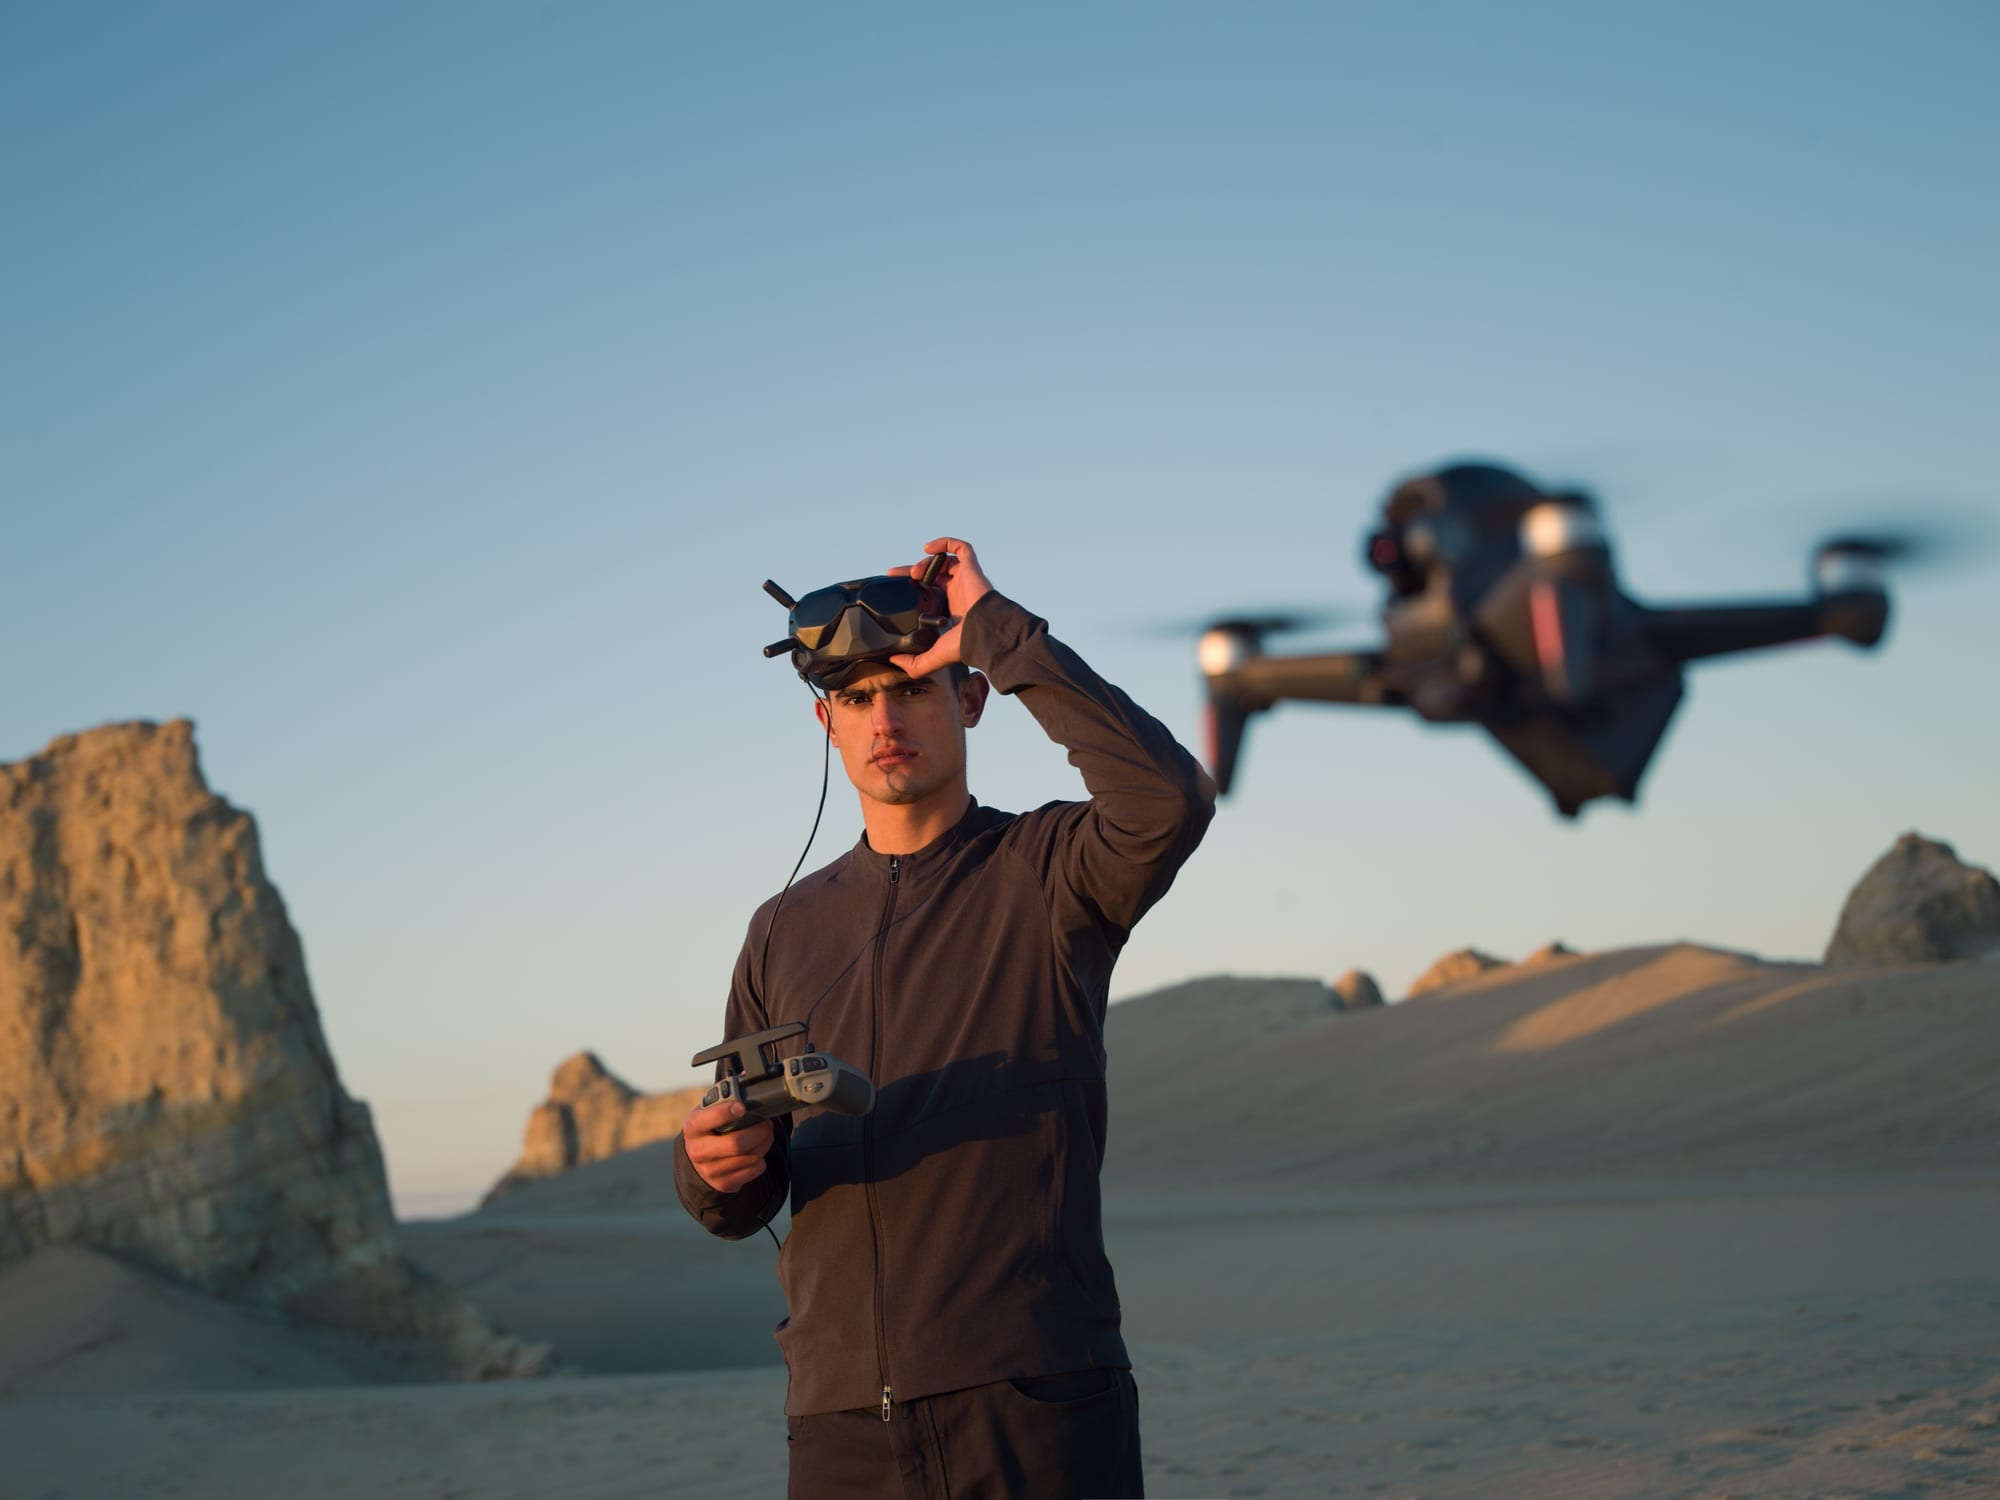 DJI FPV drone official launch and announcement